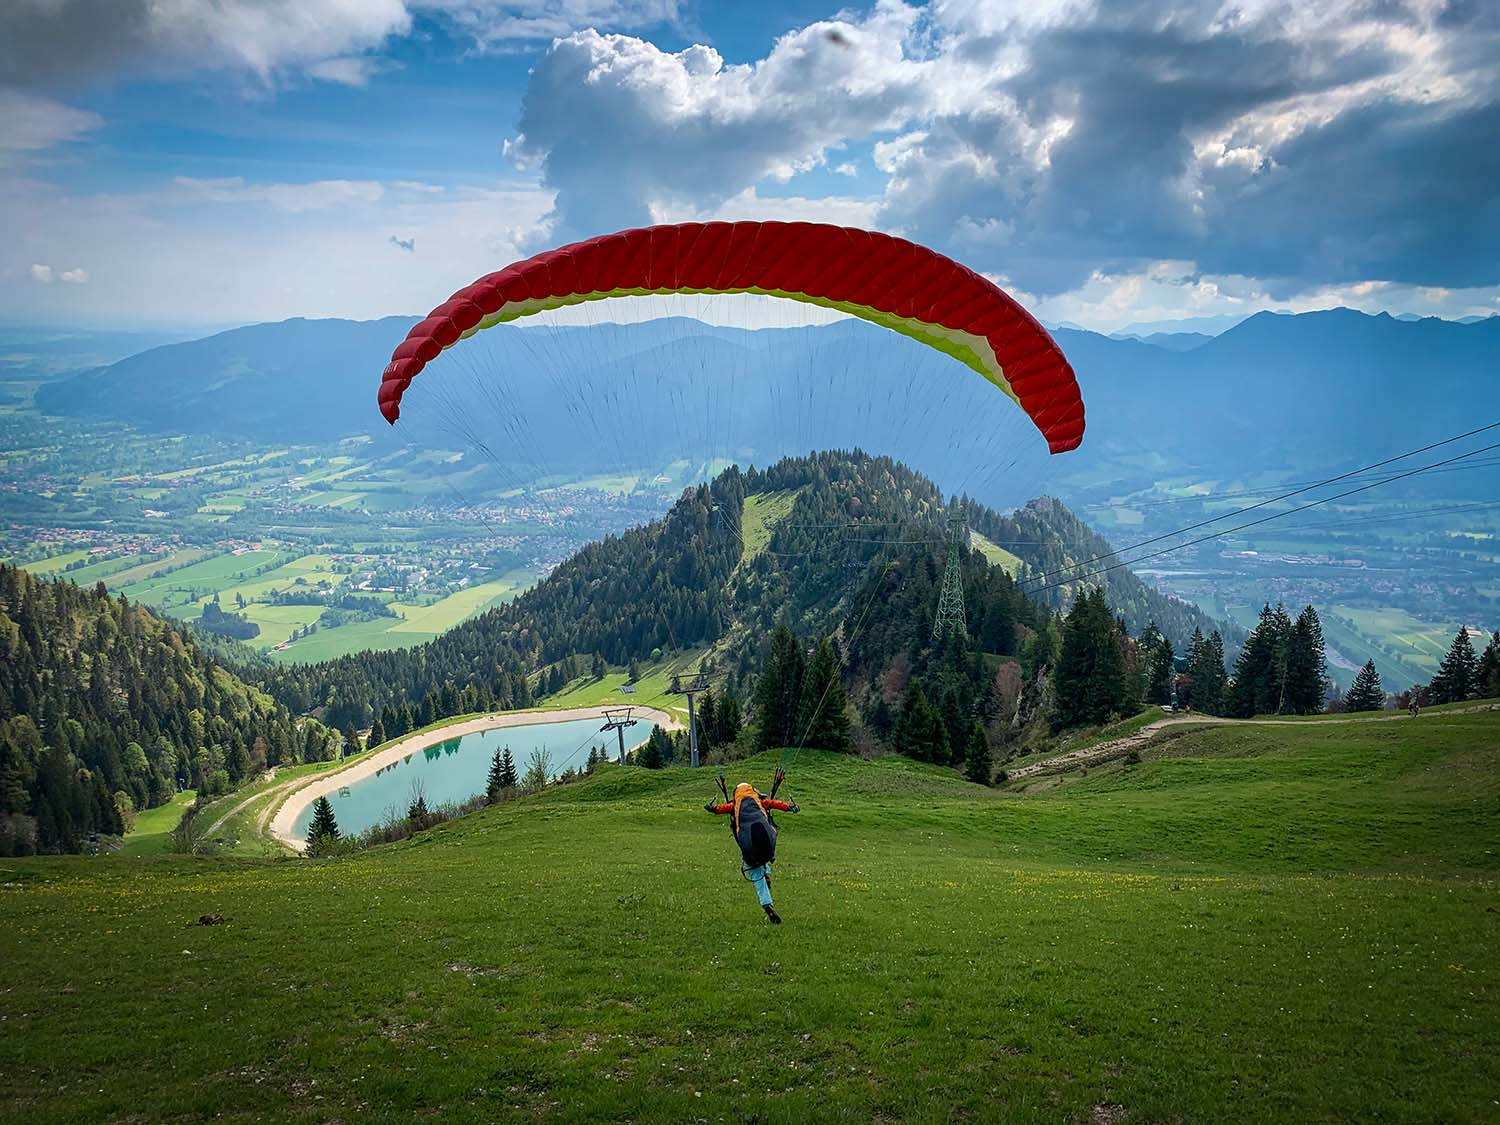 gleitschirm-hike-and-fly-kurs-mit-adventure-sports-2020-13